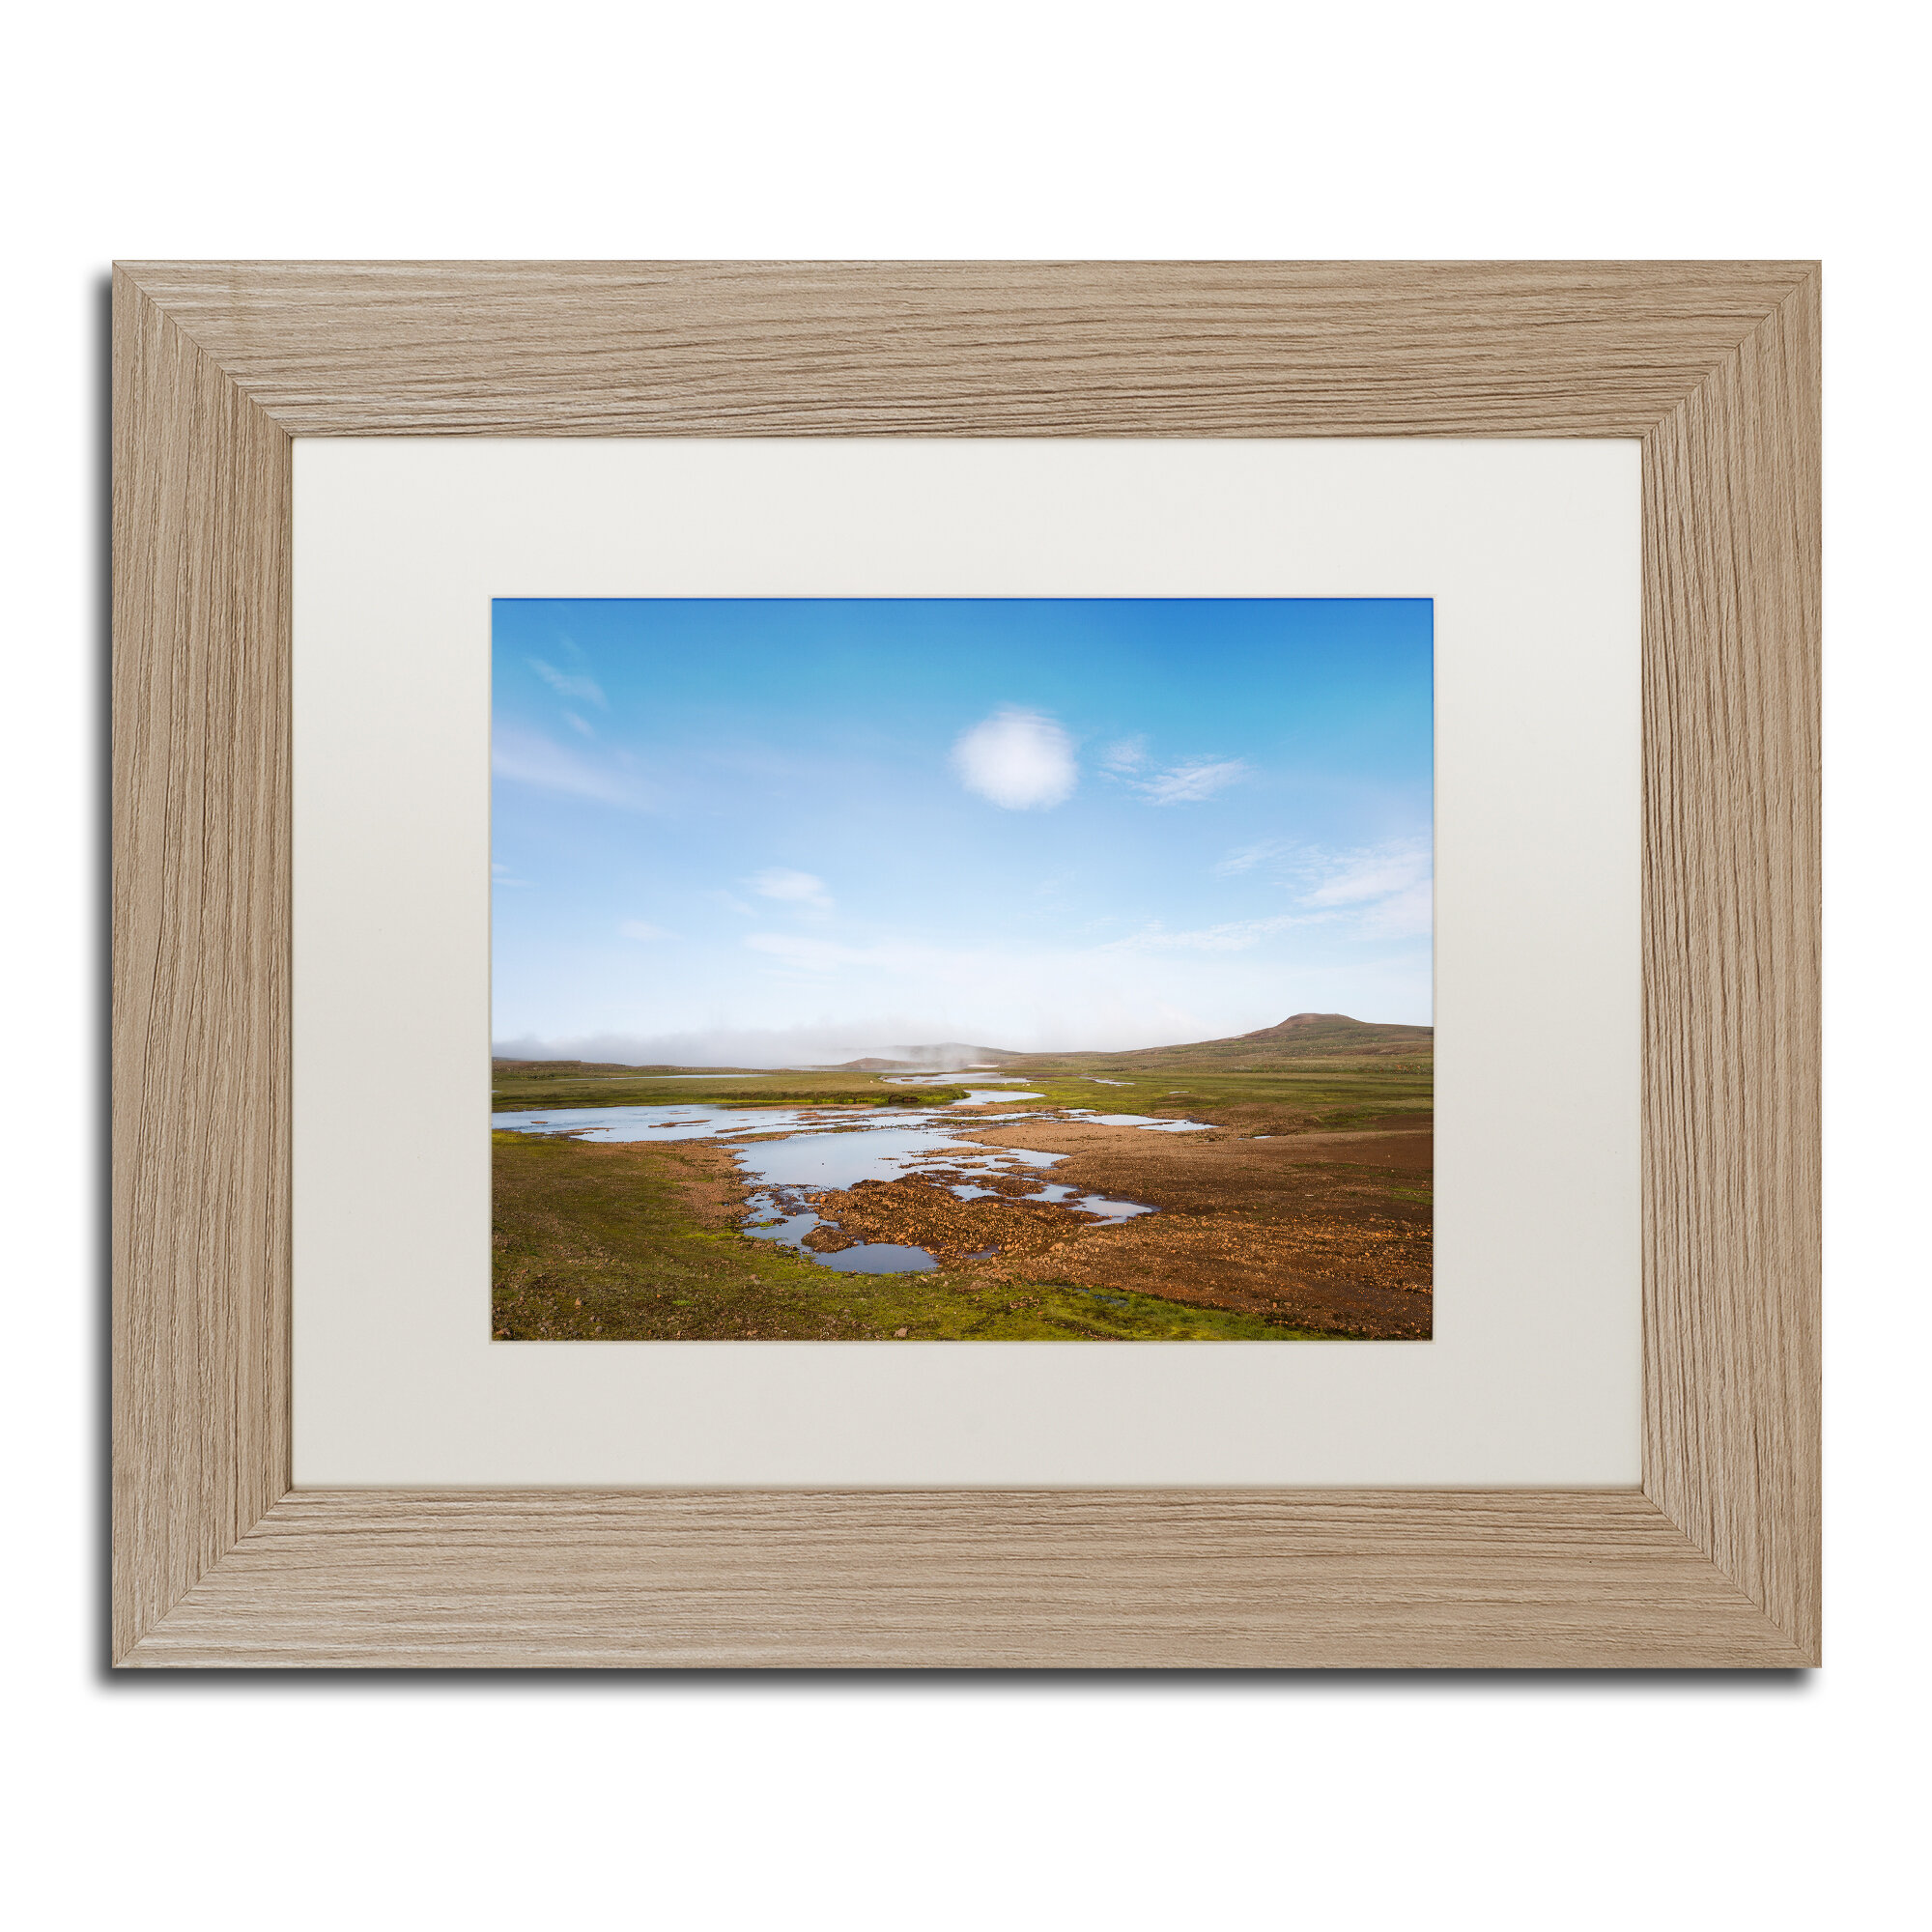 Trademark Art About Unknown Land Framed Photographic Print On Canvas Wayfair